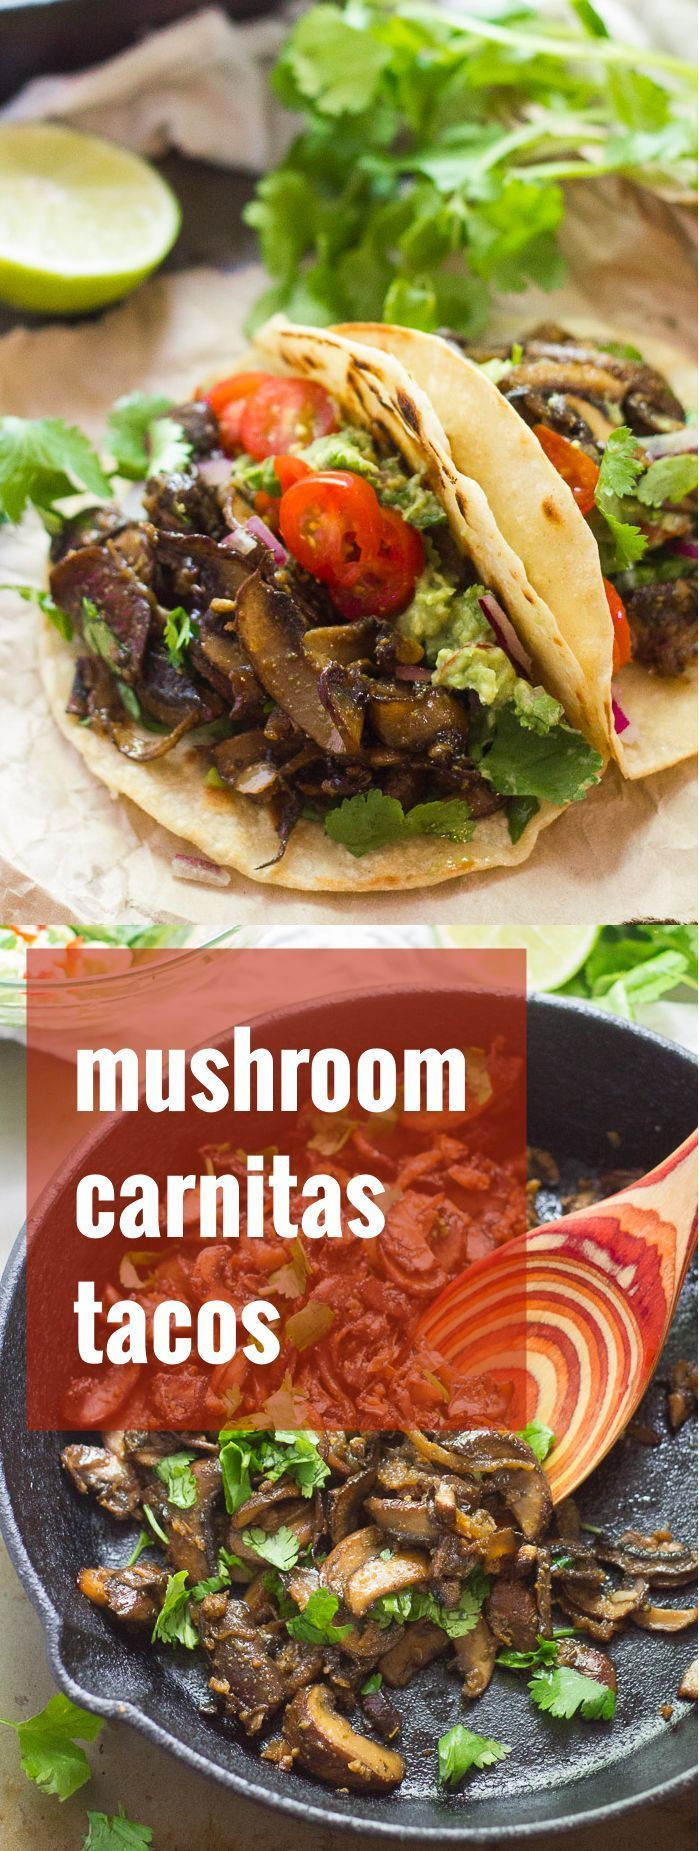 Baby portobello mushrooms are sliced thin, simmered with Mexican spices, and stuffed into tortillas with creamy guac to make these flavor-packed mushroom carnitas tacos.